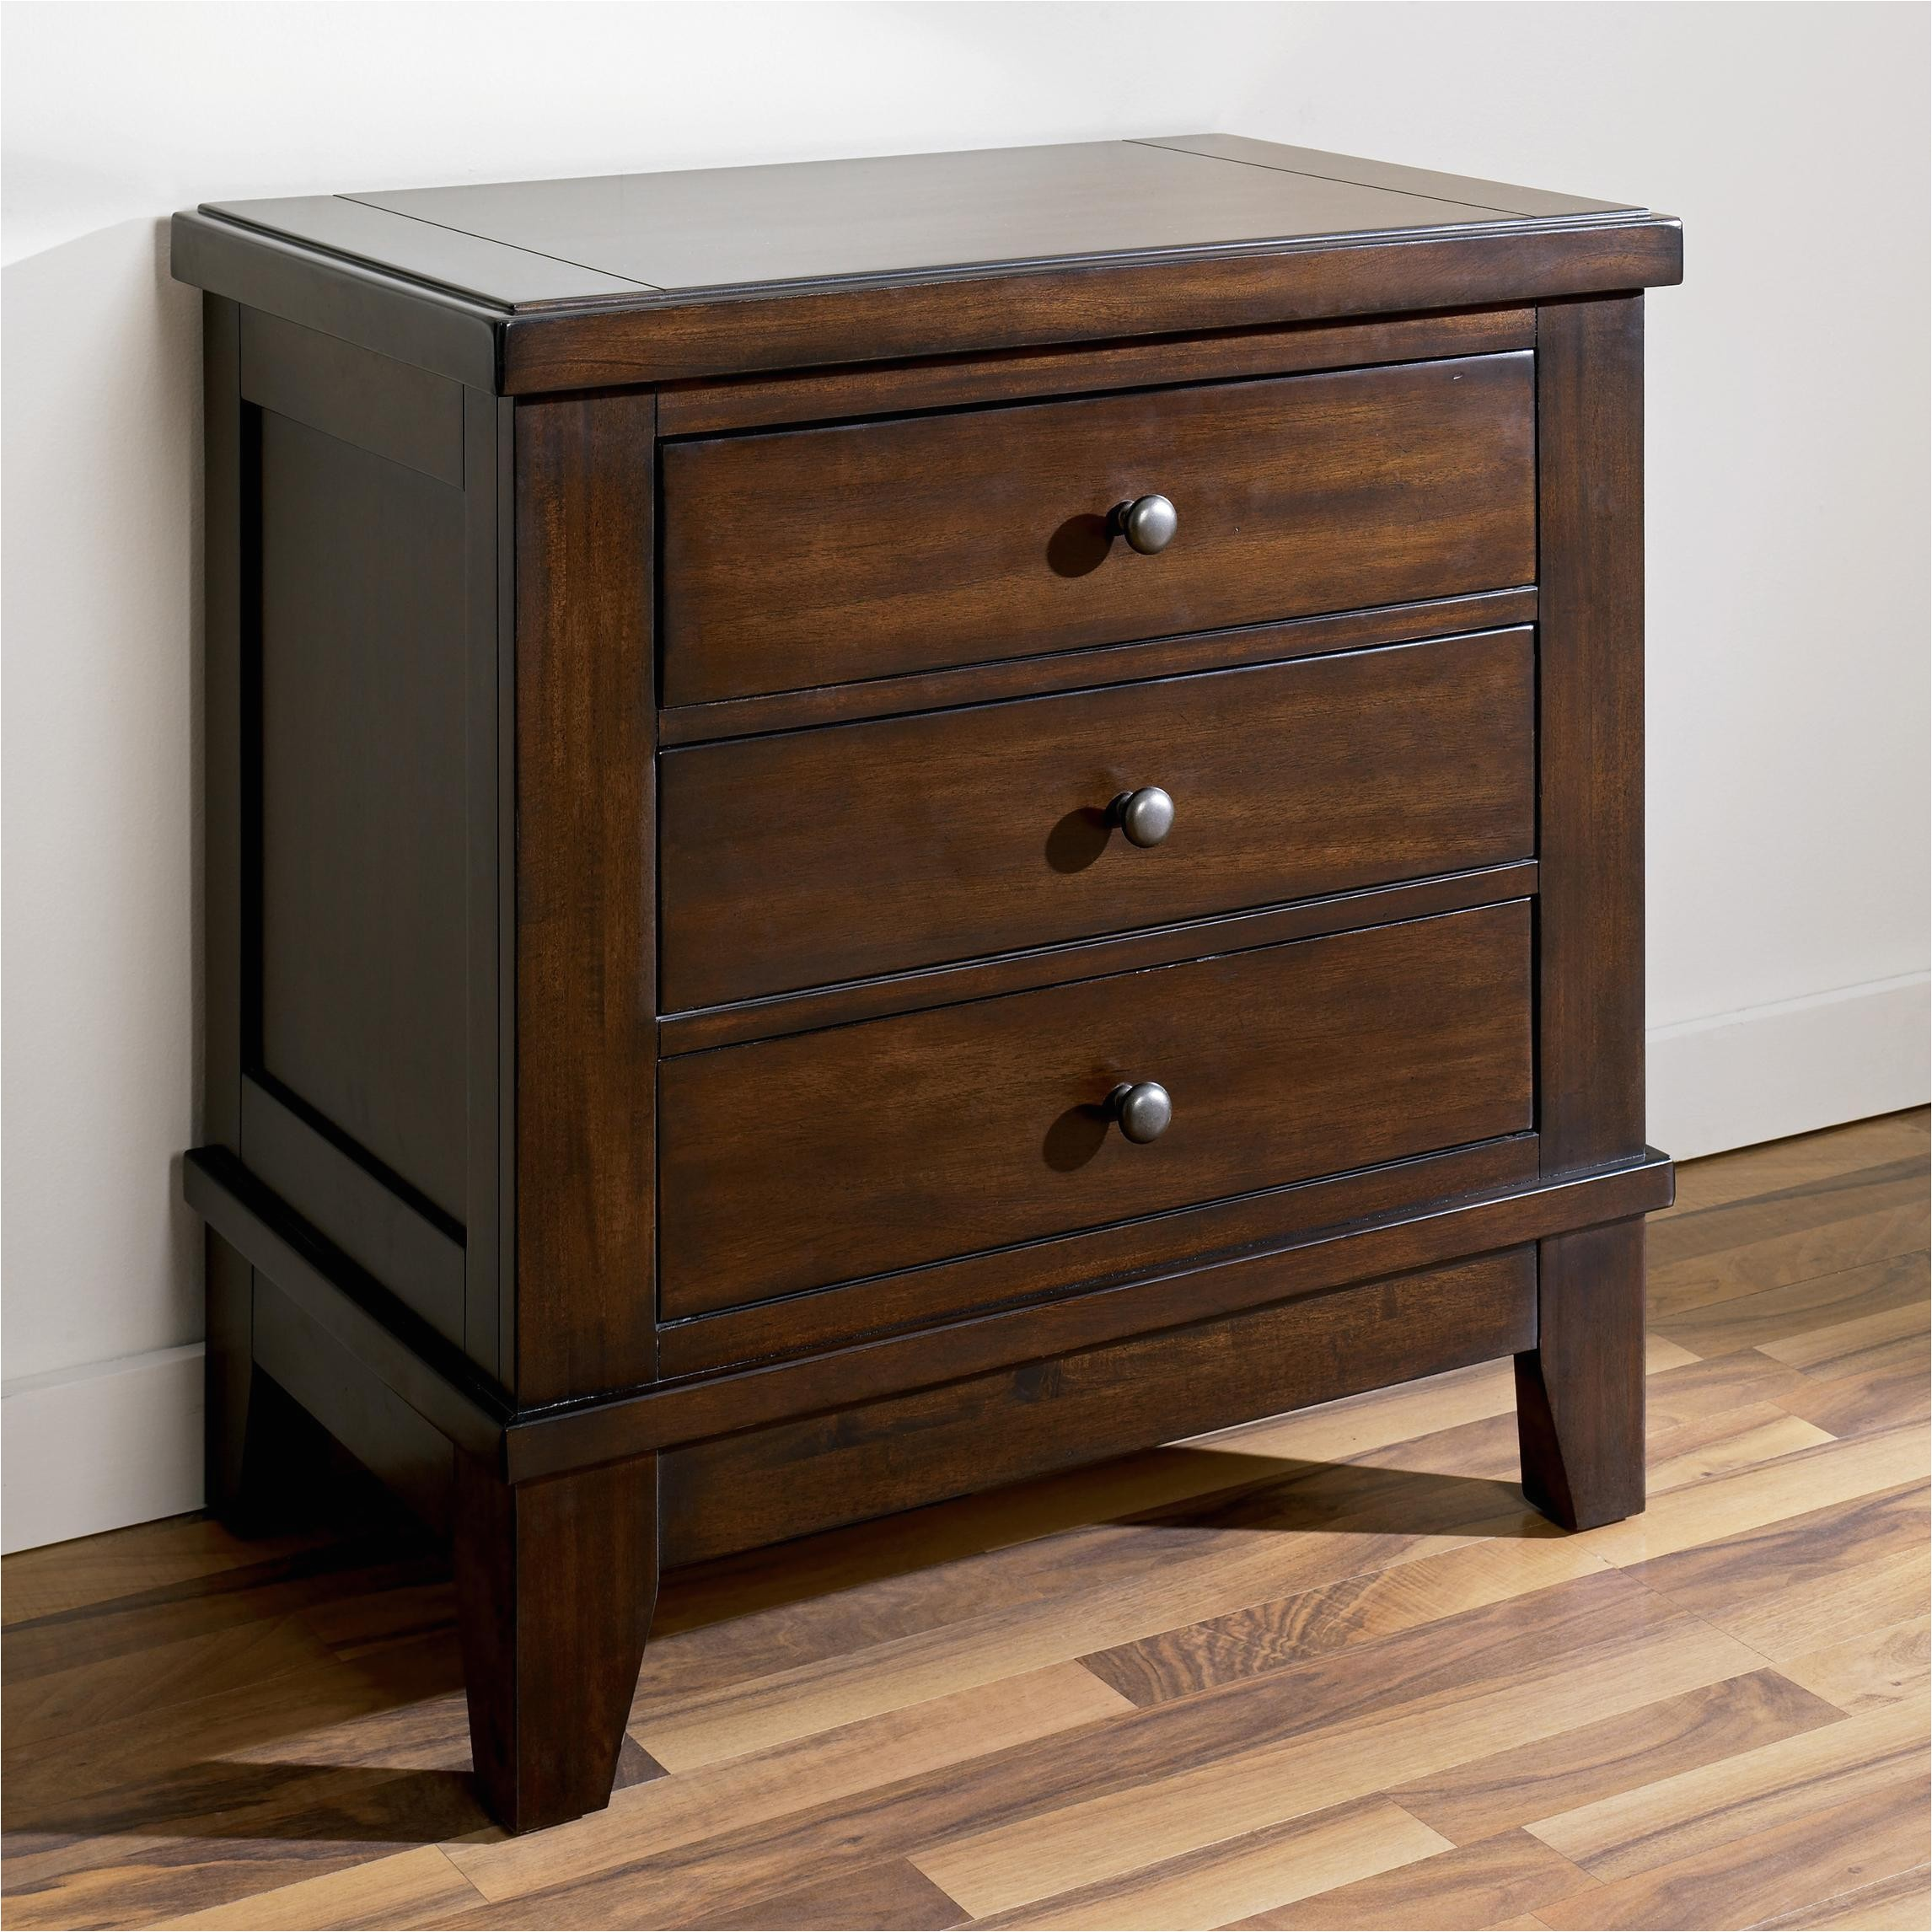 Ashley Furniture Discontinued: Ashley Furniture Discontinued Nightstands